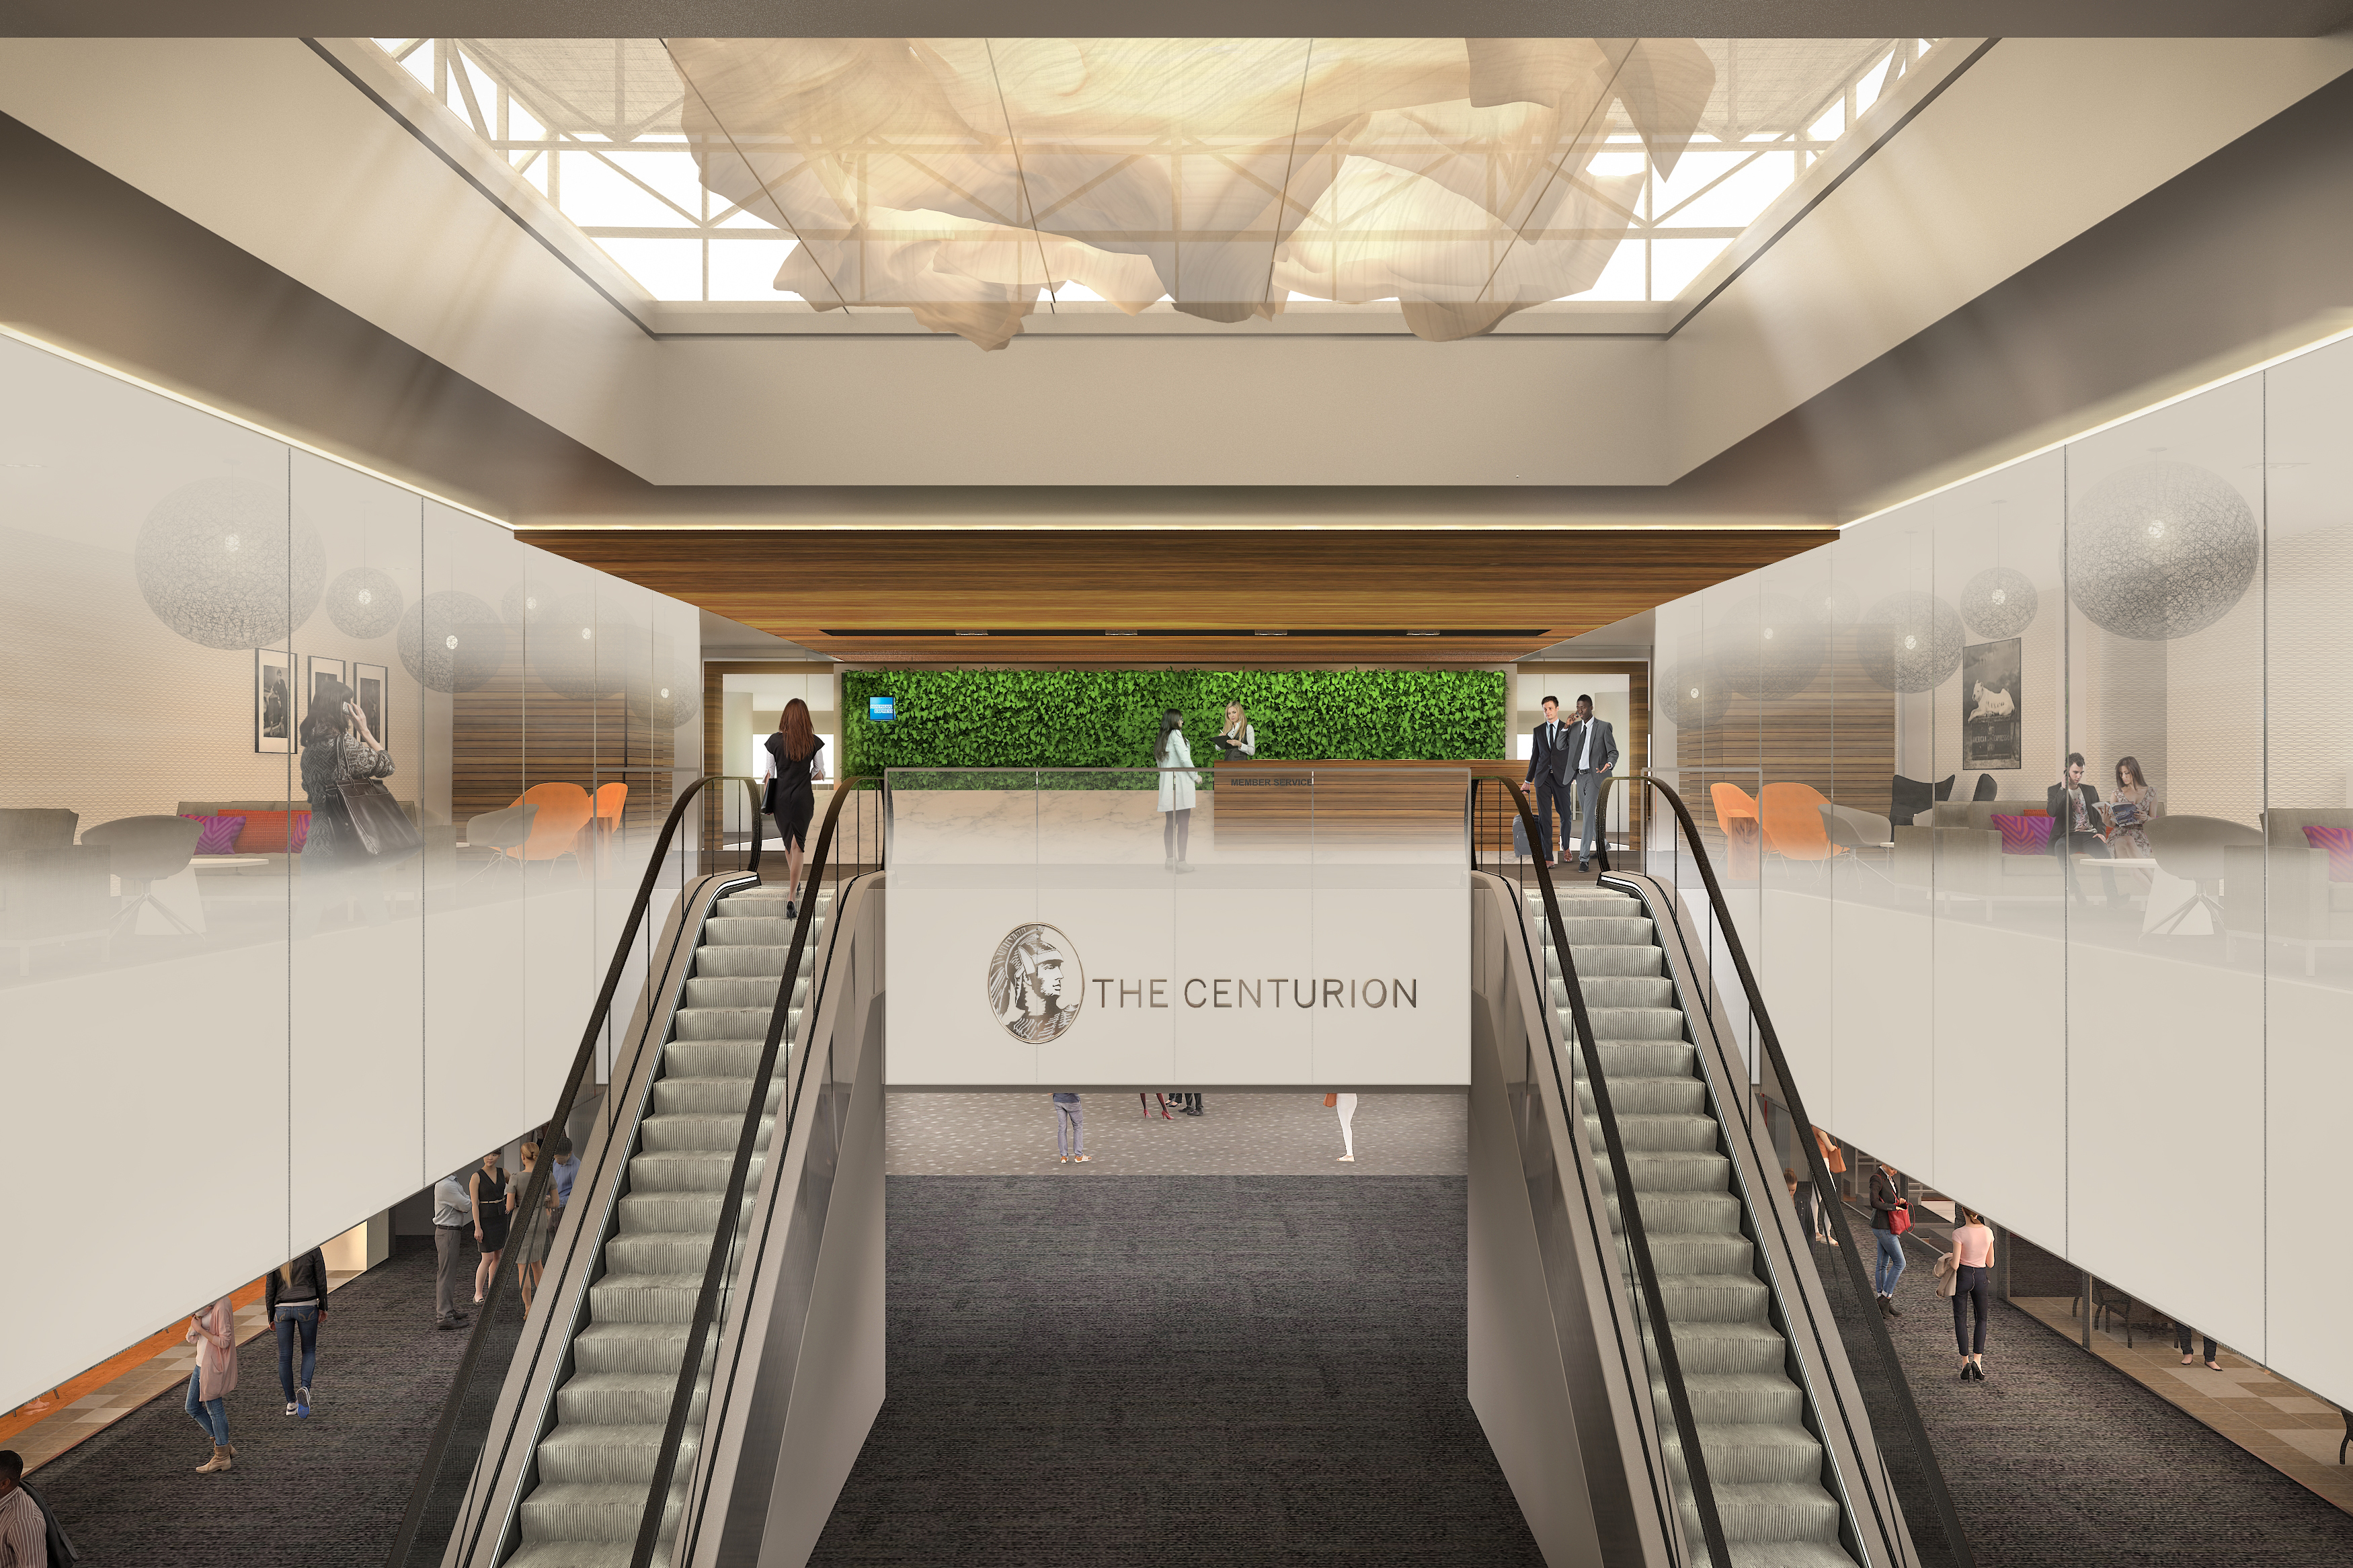 American express will open eleventh location of the centurion american express will open eleventh location of the centurion lounge at denver international airport business wire reheart Images